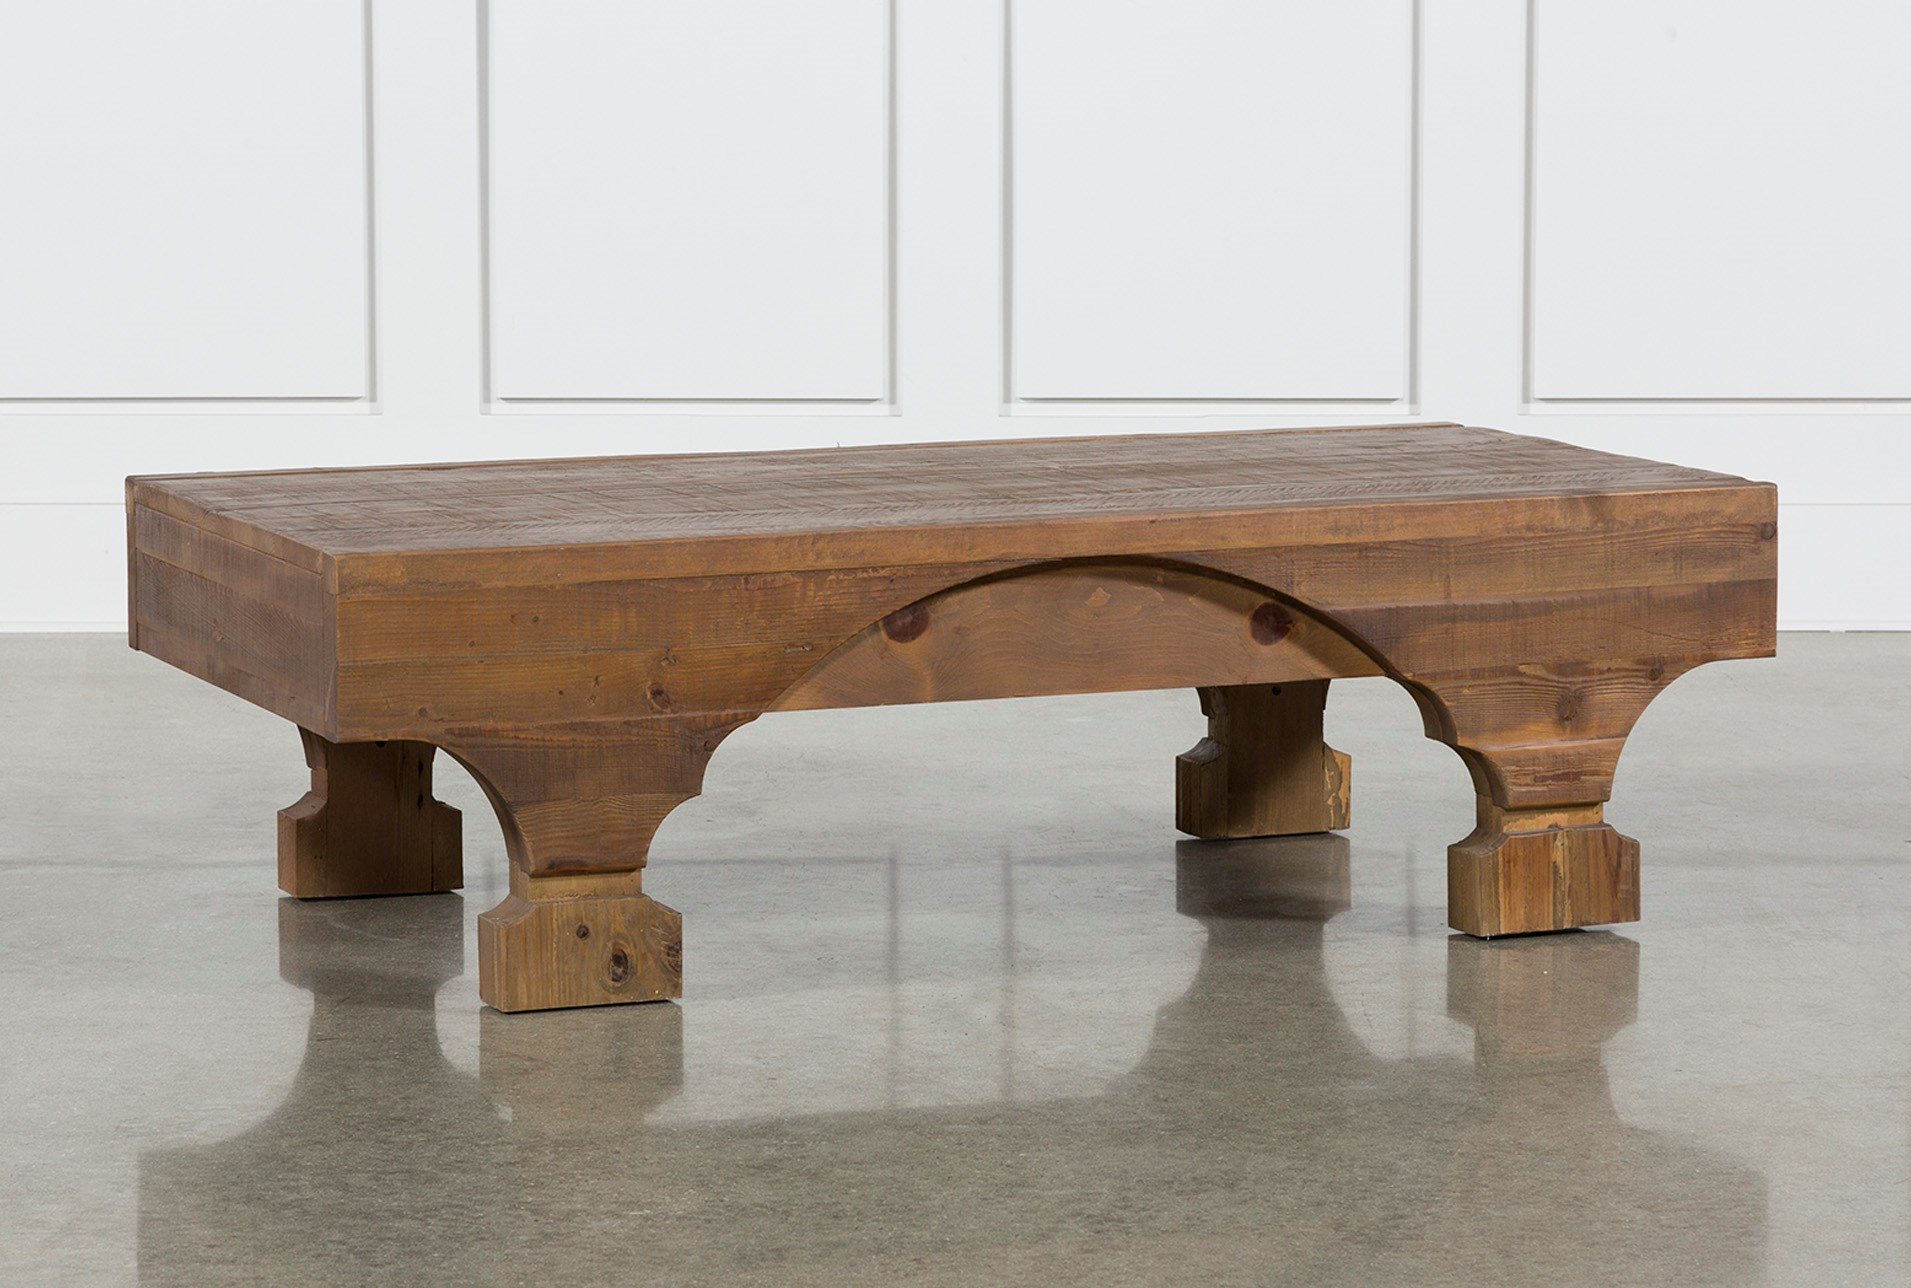 pine coffee table. Antique Pine Coffee Table (Qty: 1) Has Been Successfully Added To Your Cart. E